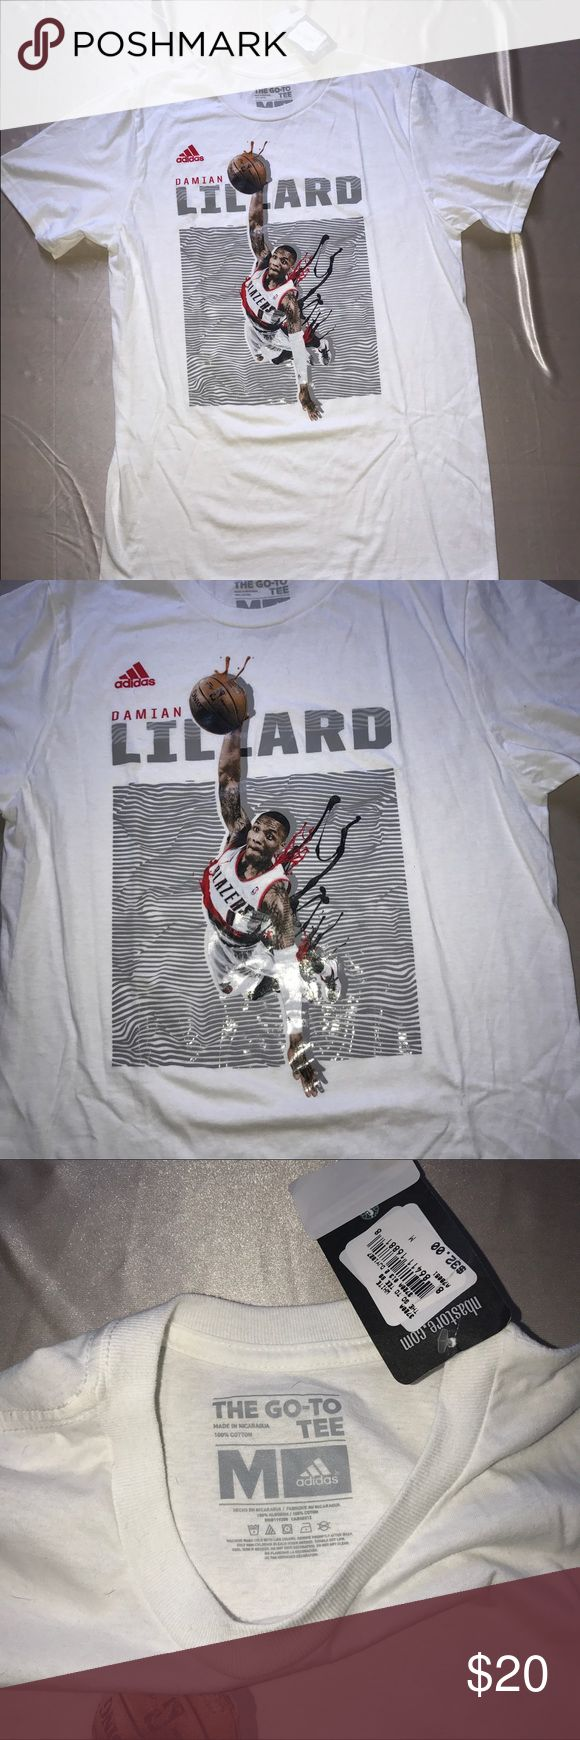 """Adidas NBA authentic Damian lillard t- shirt New with tags Adidas Official outfitters """"The Go-To Tee"""" t-shirt in great condition! Adidas Shirts Tees - Short Sleeve"""